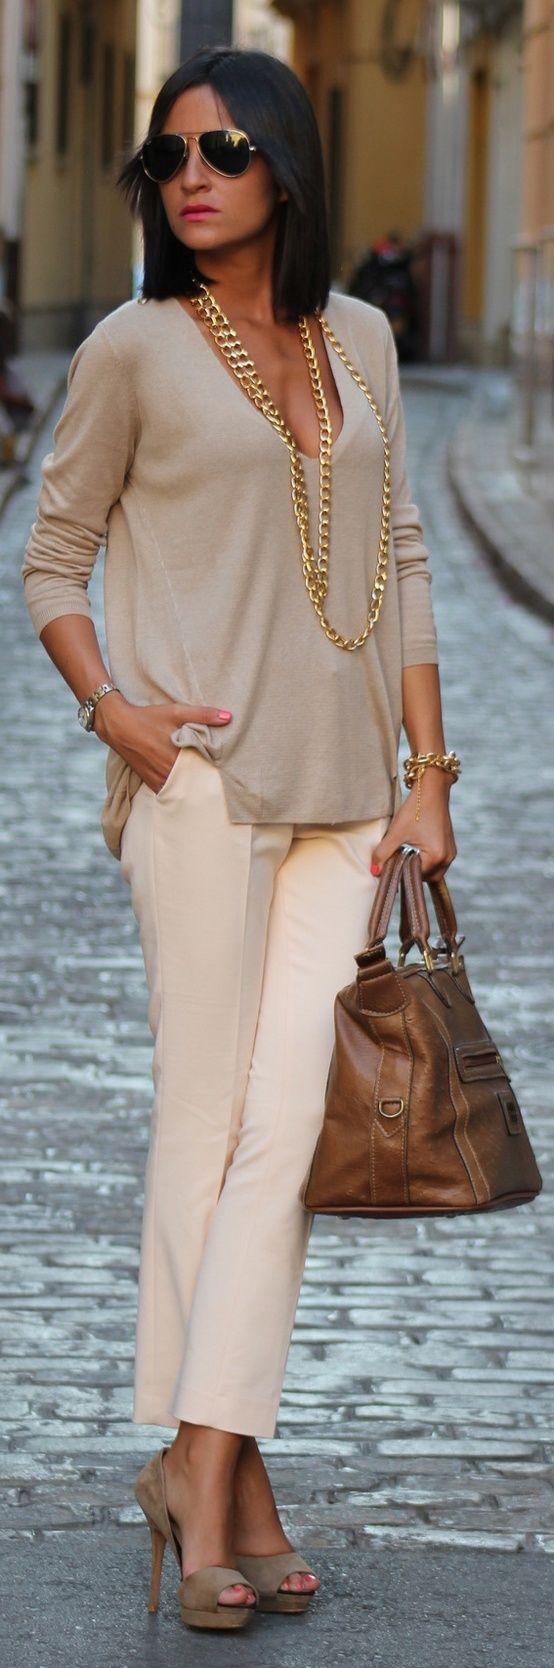 Loveeee this outfit! Neutrals